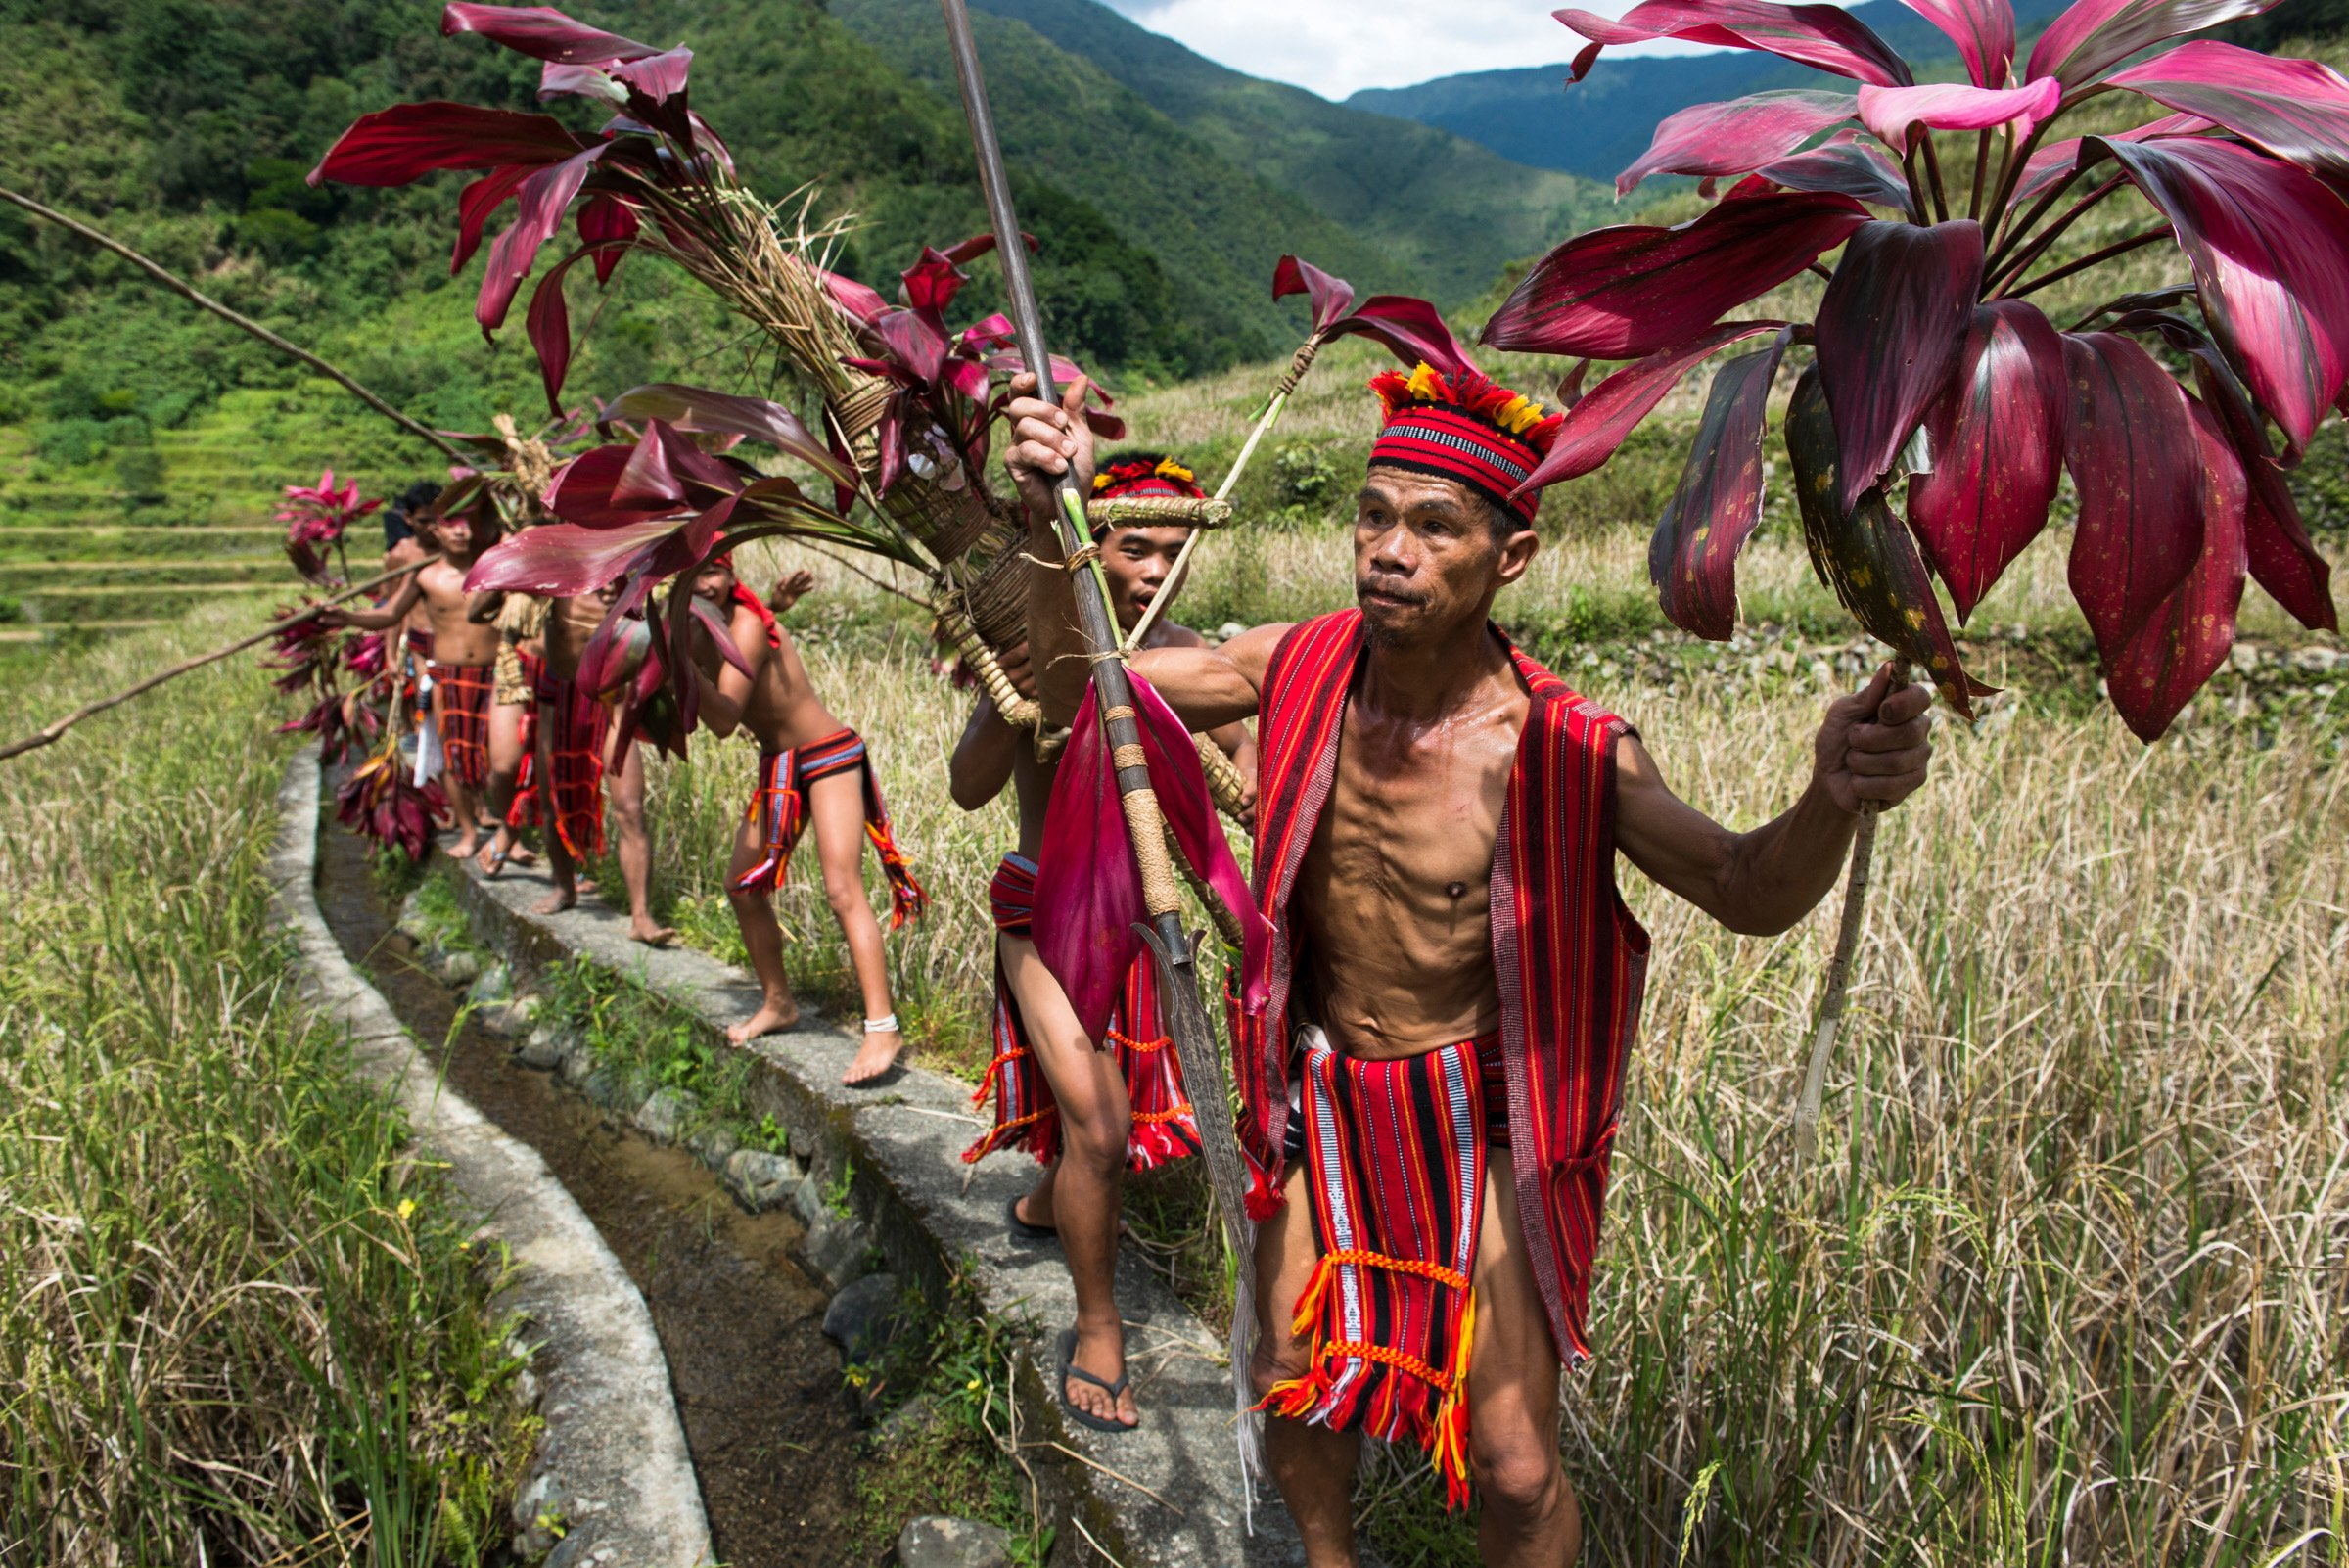 """Every year in the Cordillera mountains of Luzon a ritual is held to celebrate the end of the rice harvest season. Over a two day period, three barangays gather to give thanks and blessings of post harvest with the celebration culminating in a """"punnuk"""" (tug-of-war) which is held in a river flowing through the heritage rice terraces."""